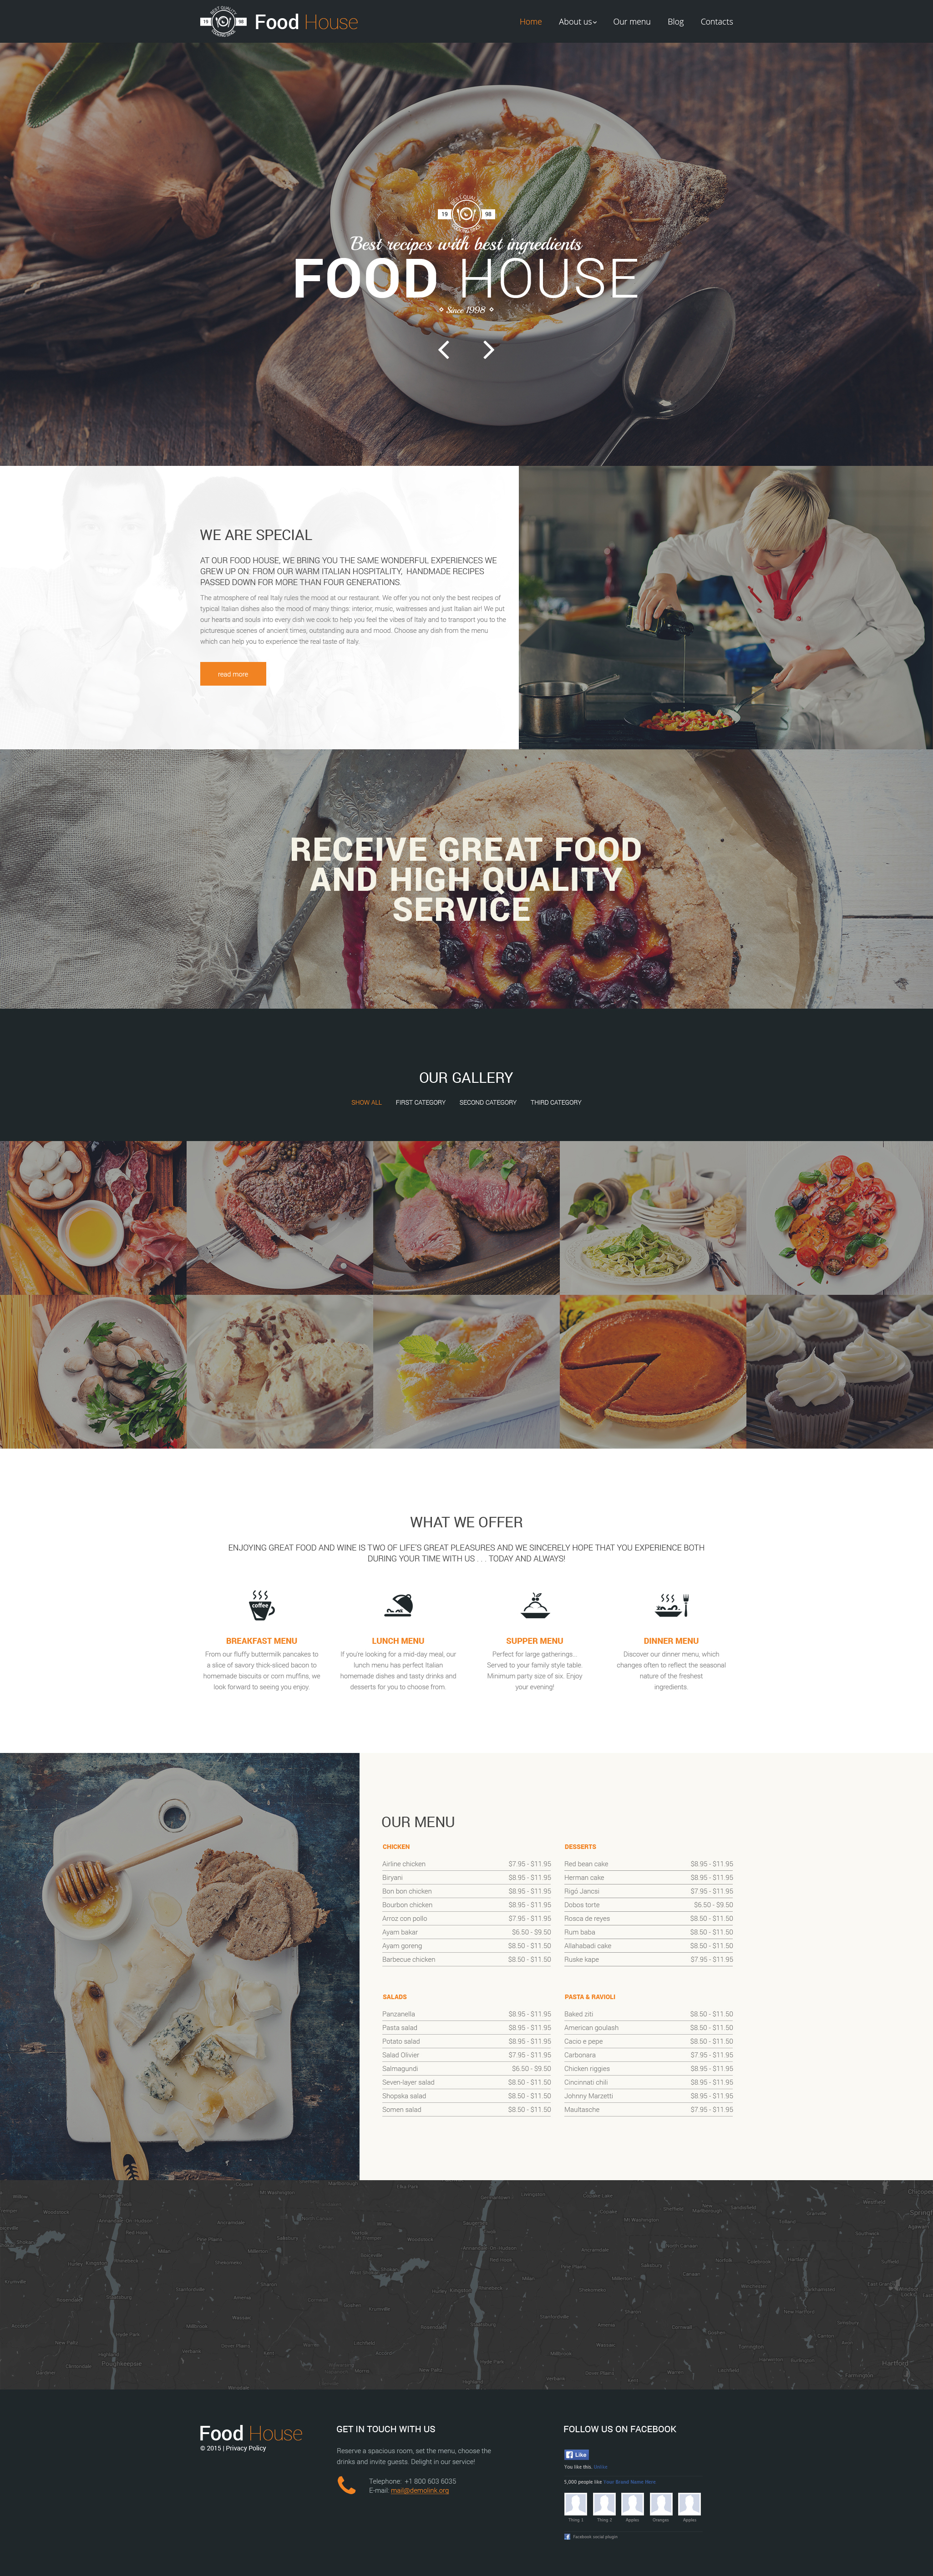 Food House Drupal Template